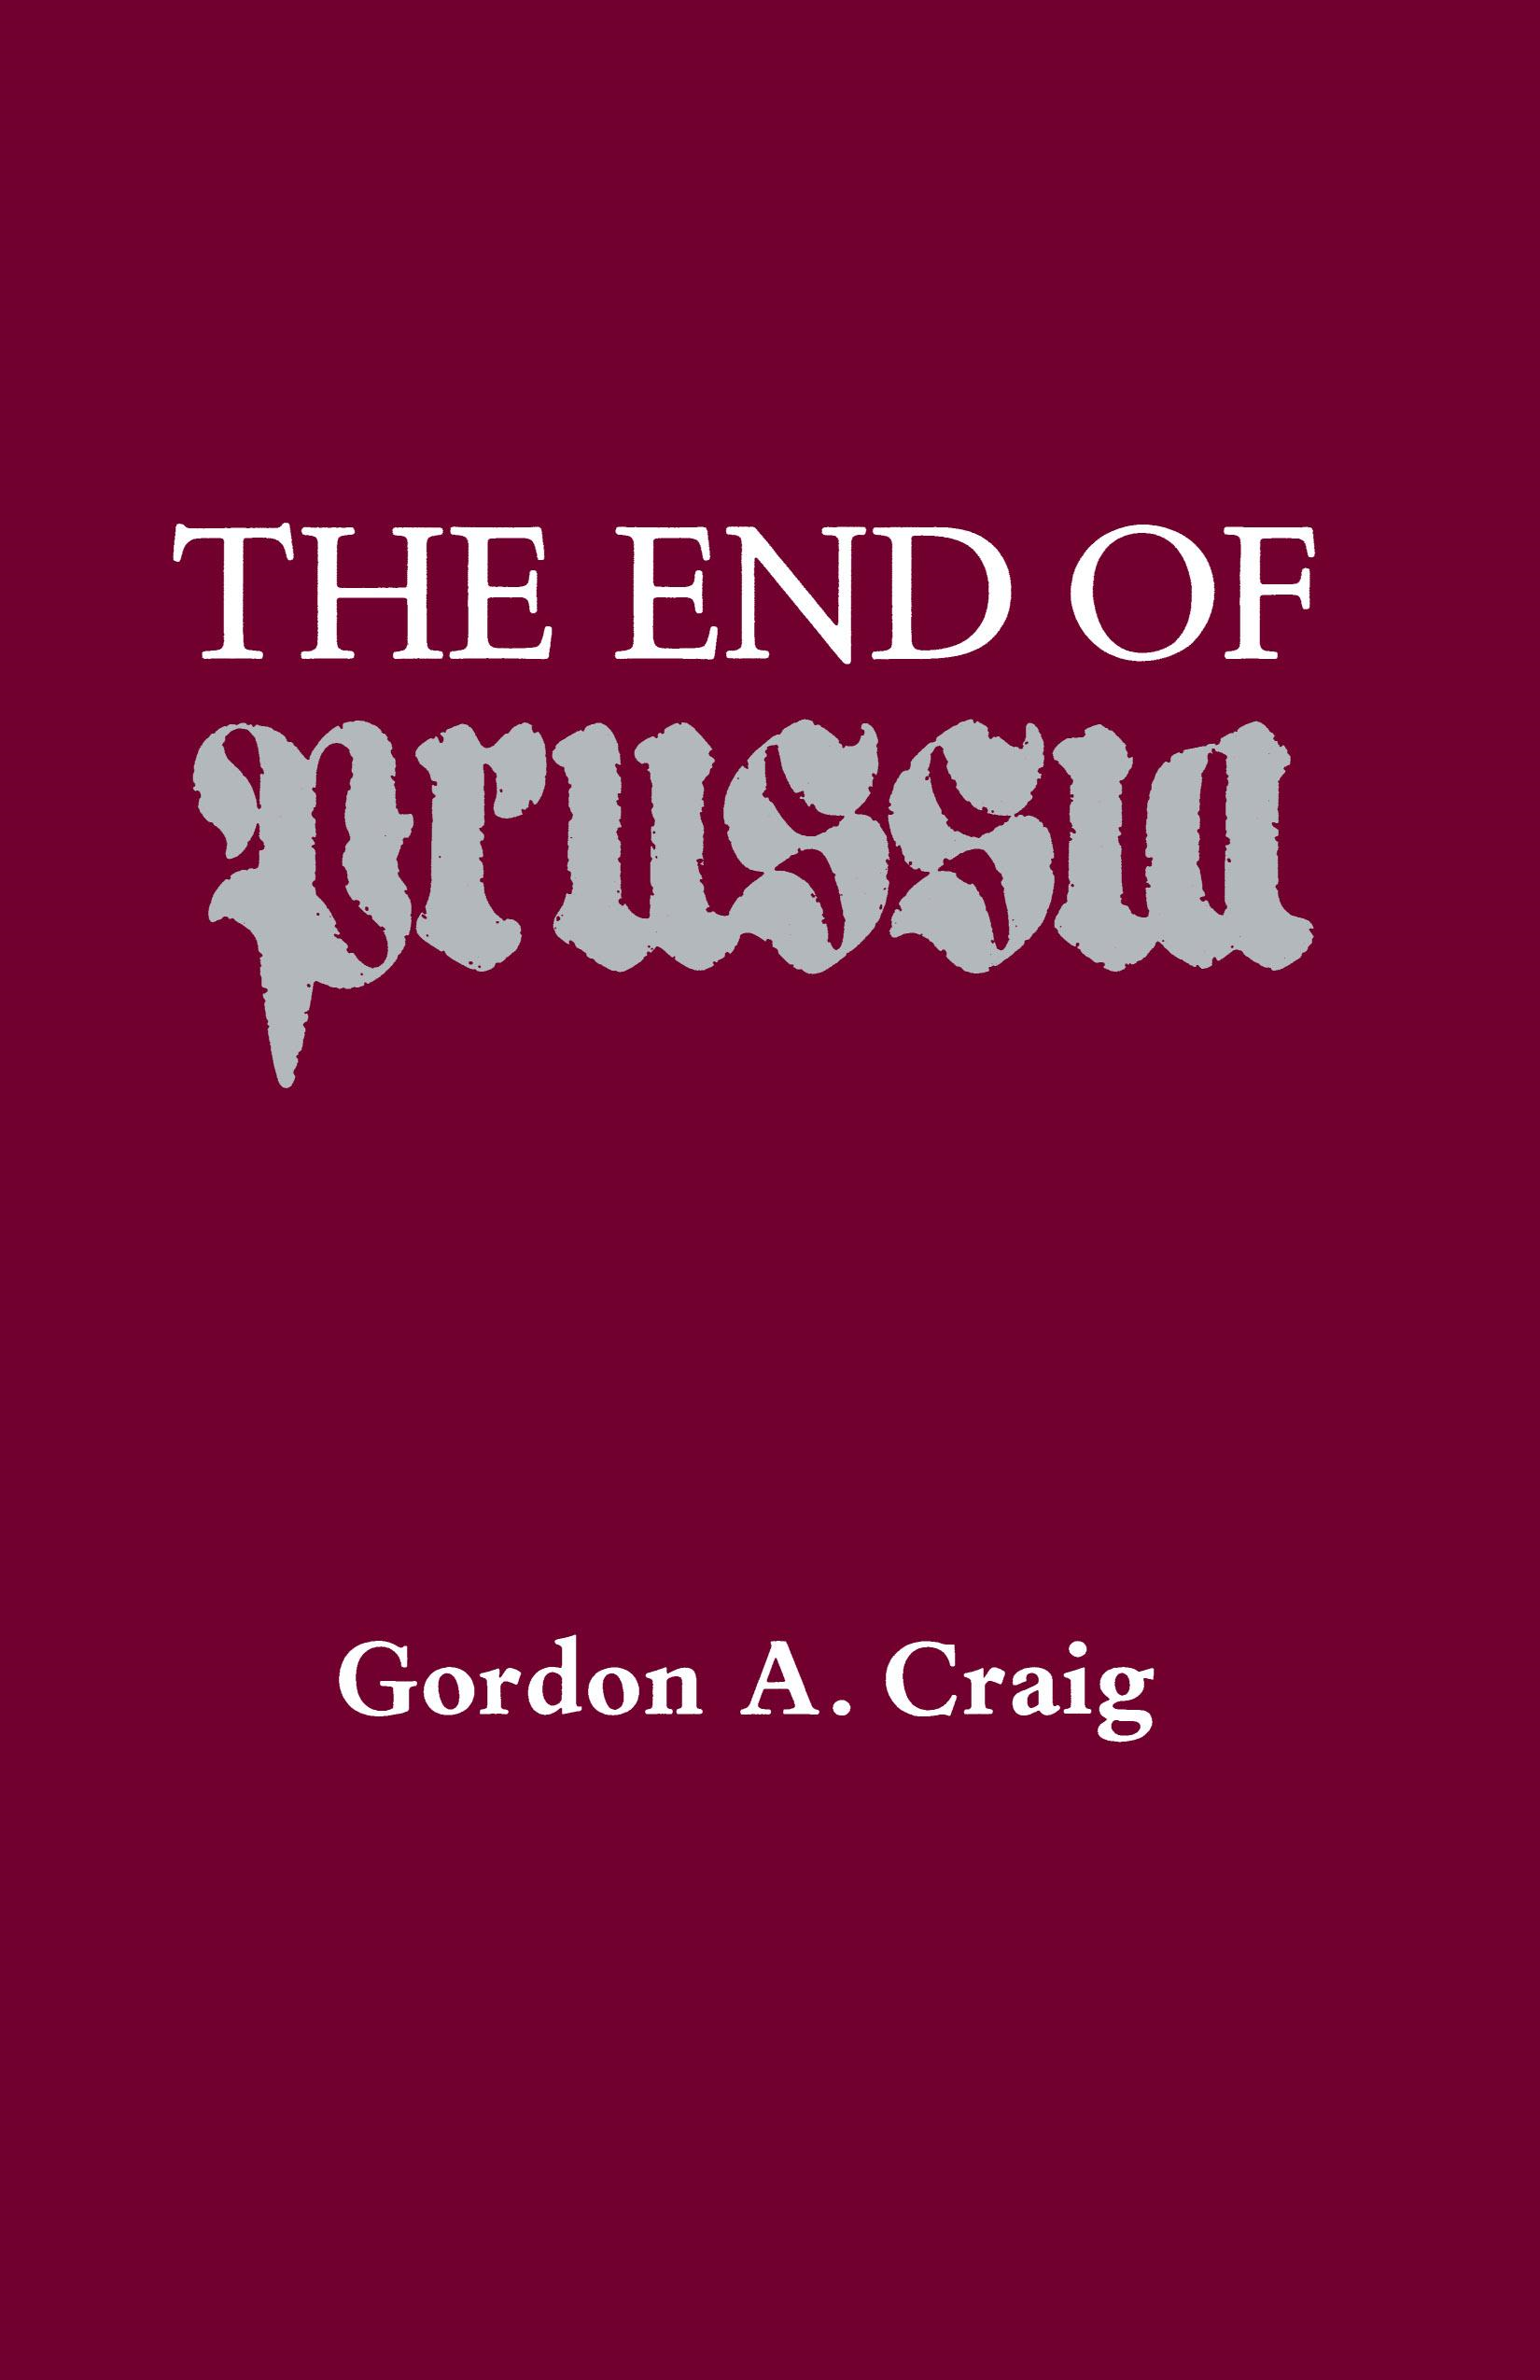 The End Of Prussia